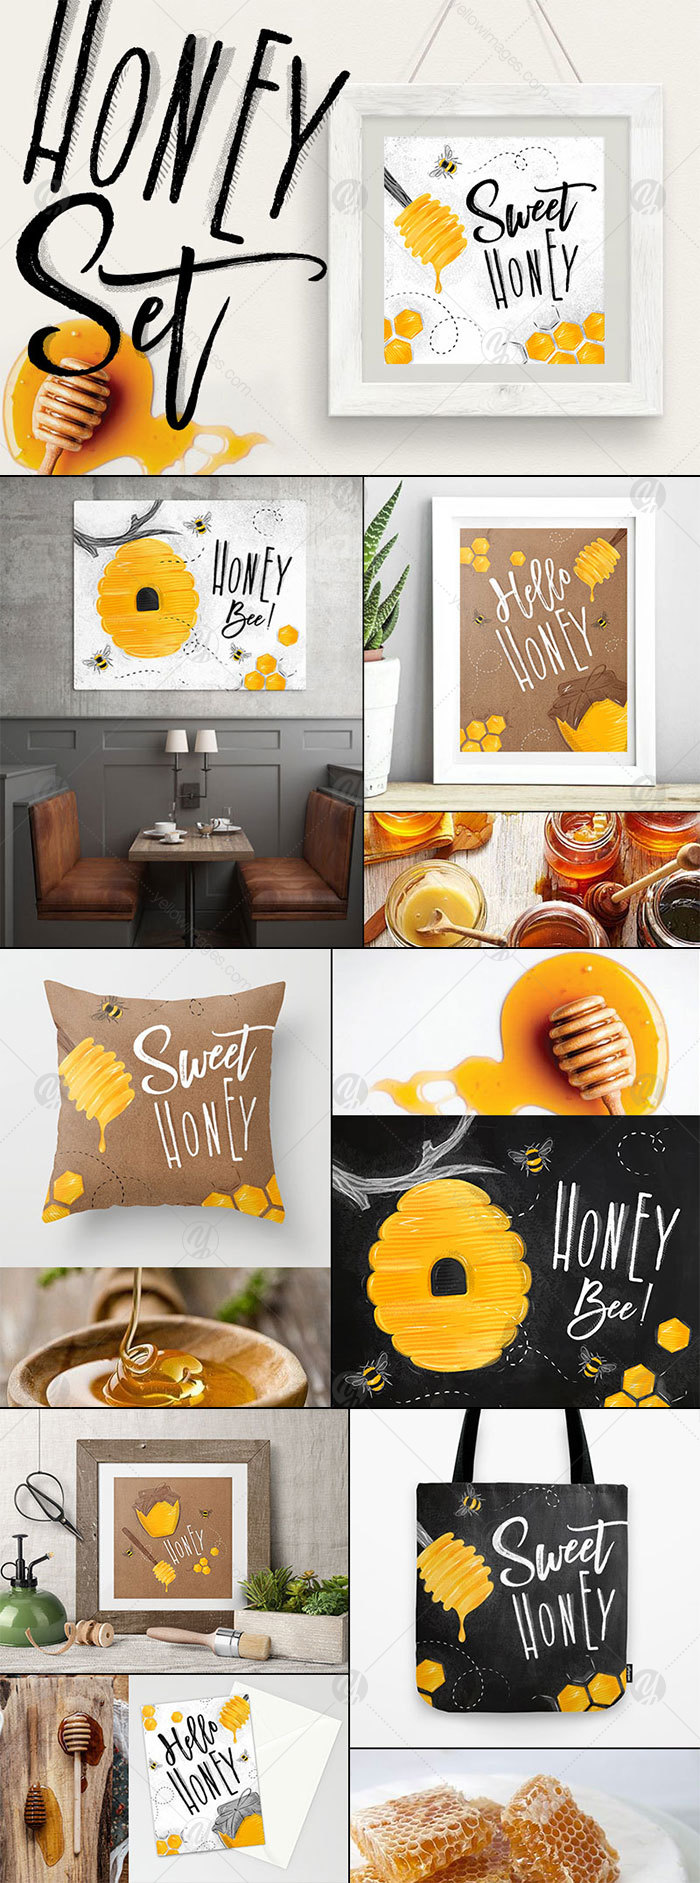 Honey Set